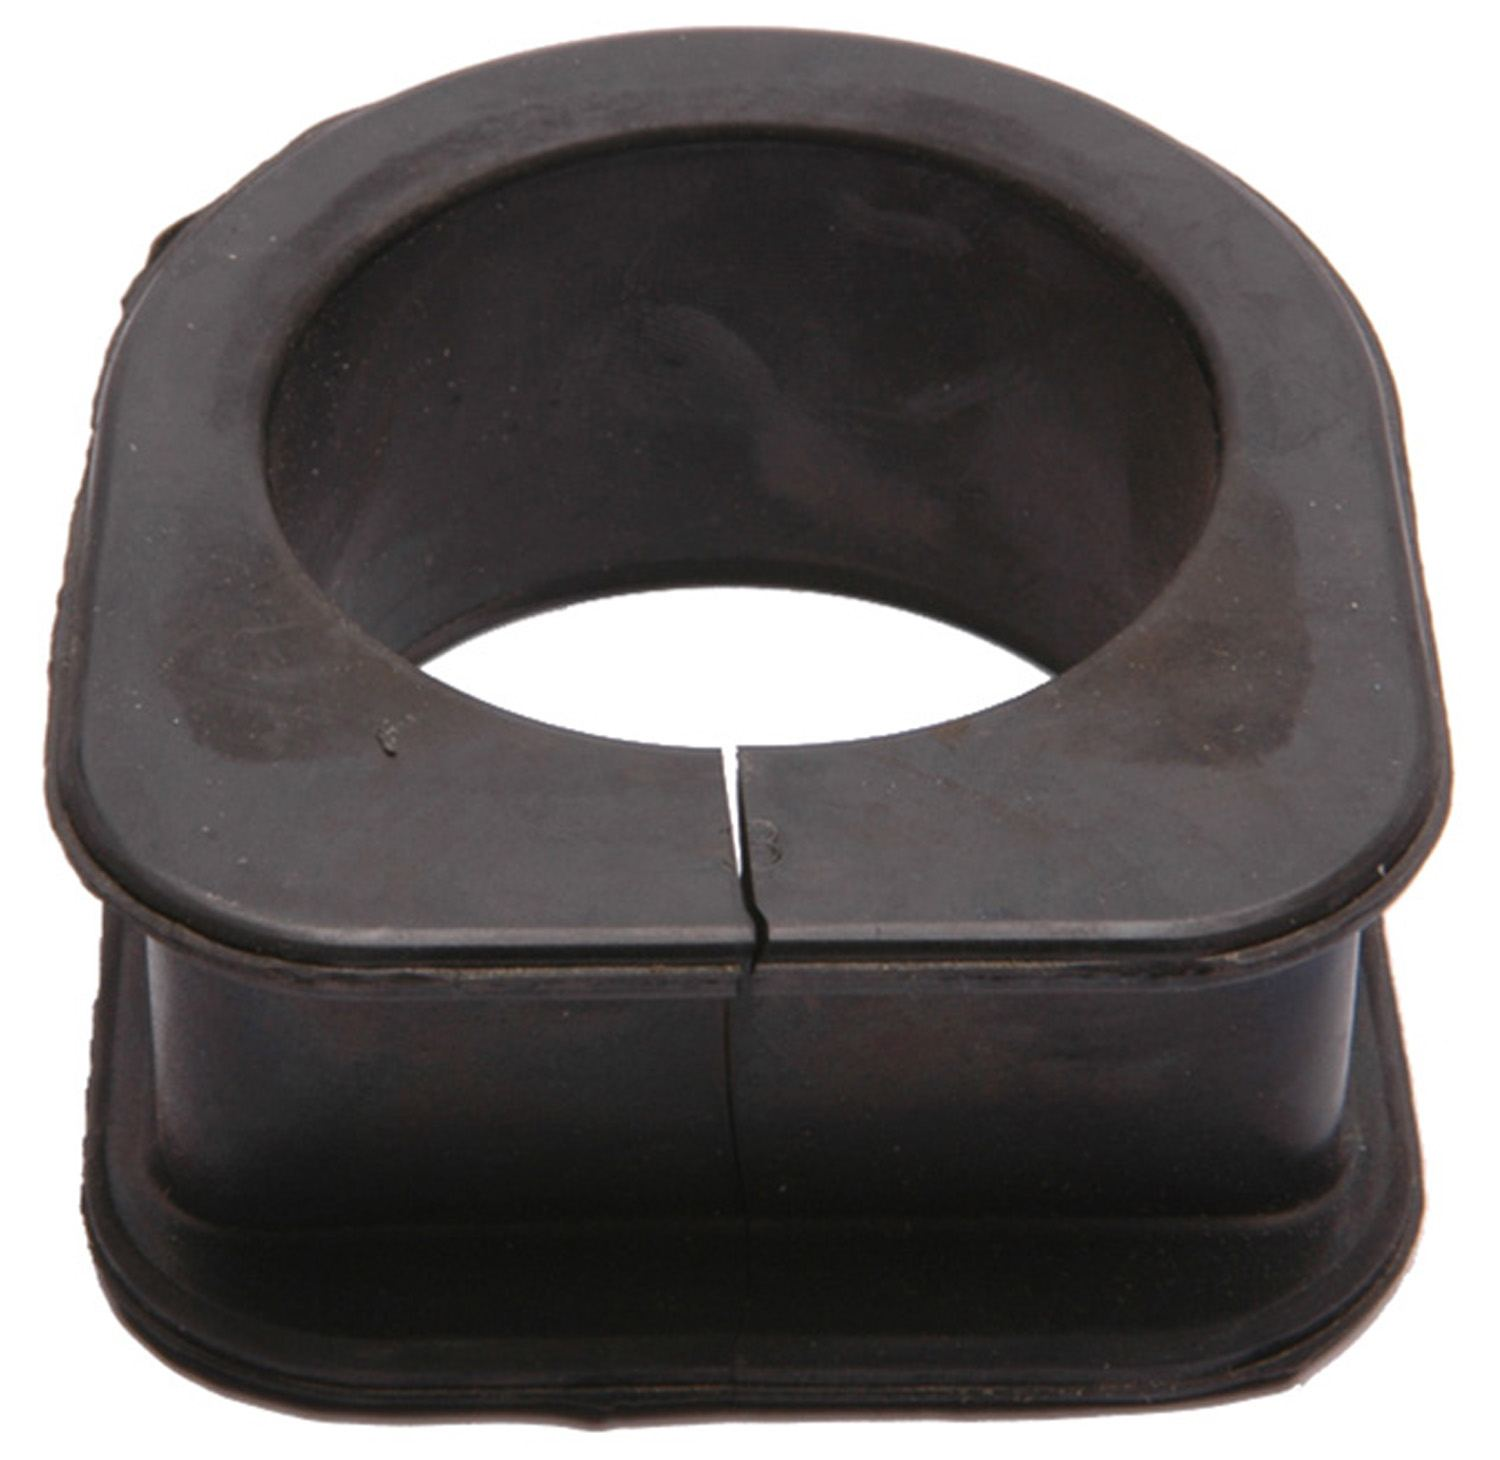 ACDELCO GOLD/PROFESSIONAL - Rack and Pinion Mount Bushing - DCC 45G24026